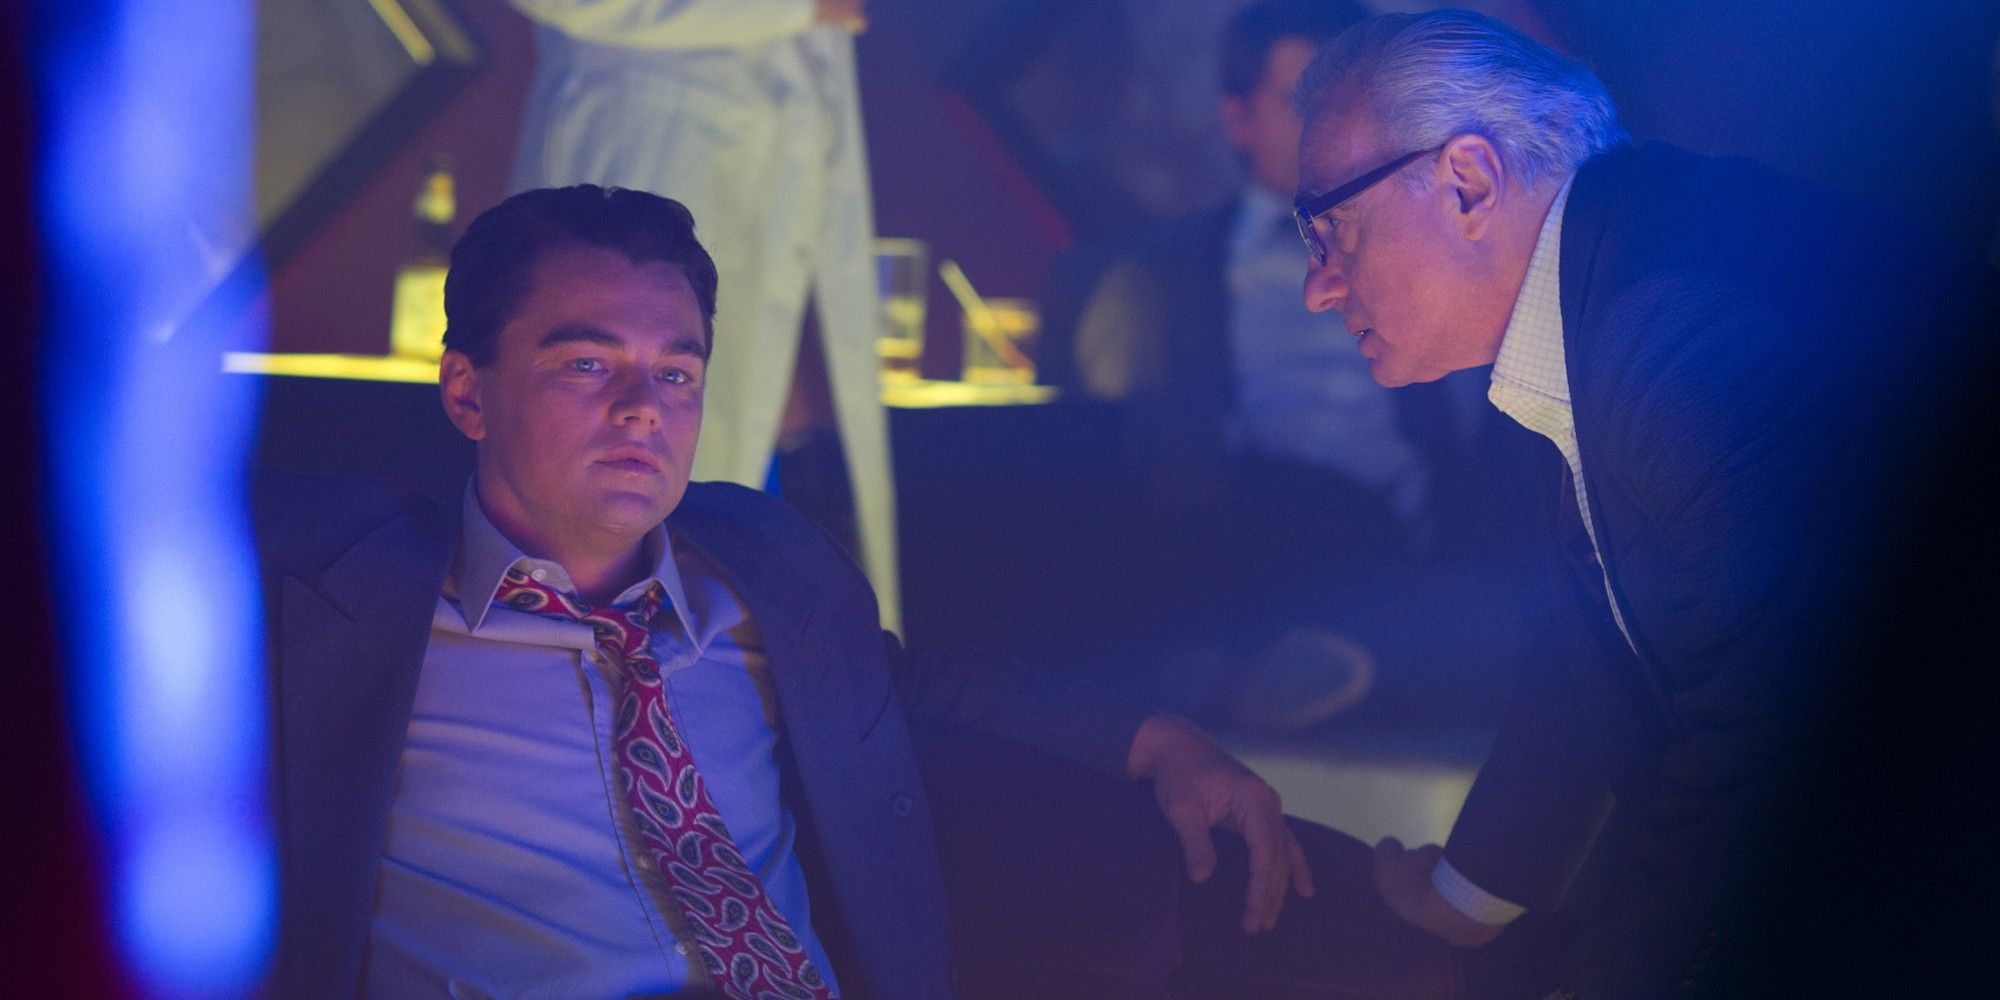 Paramount Picks Up Scorsese & DiCaprio's Killers of the Flower Moon